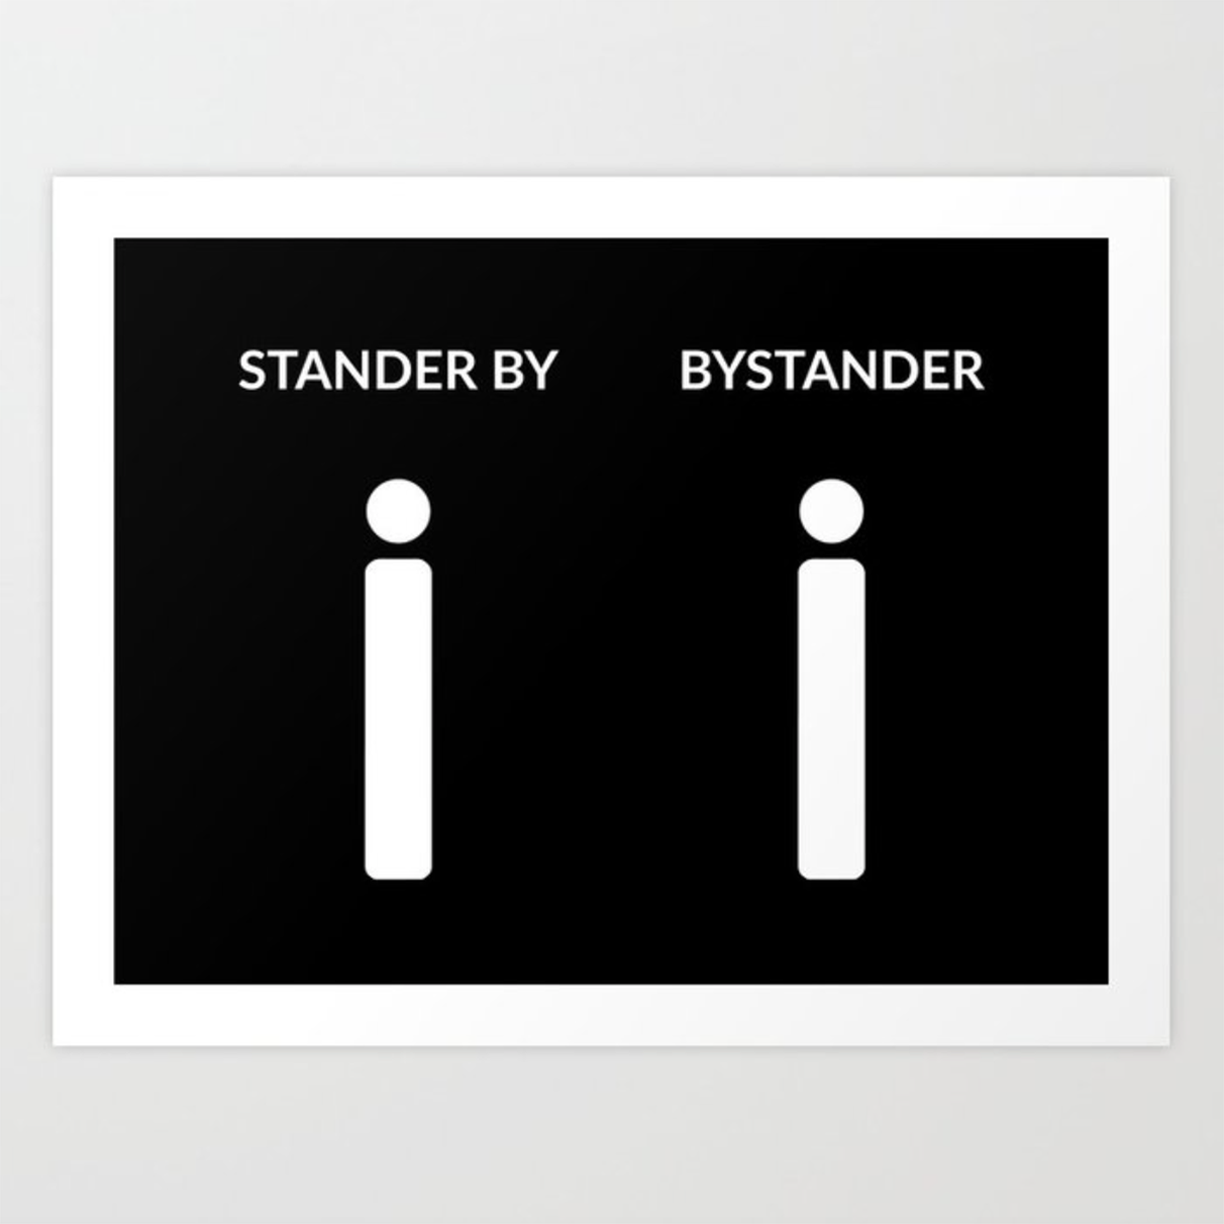 STAND BY…